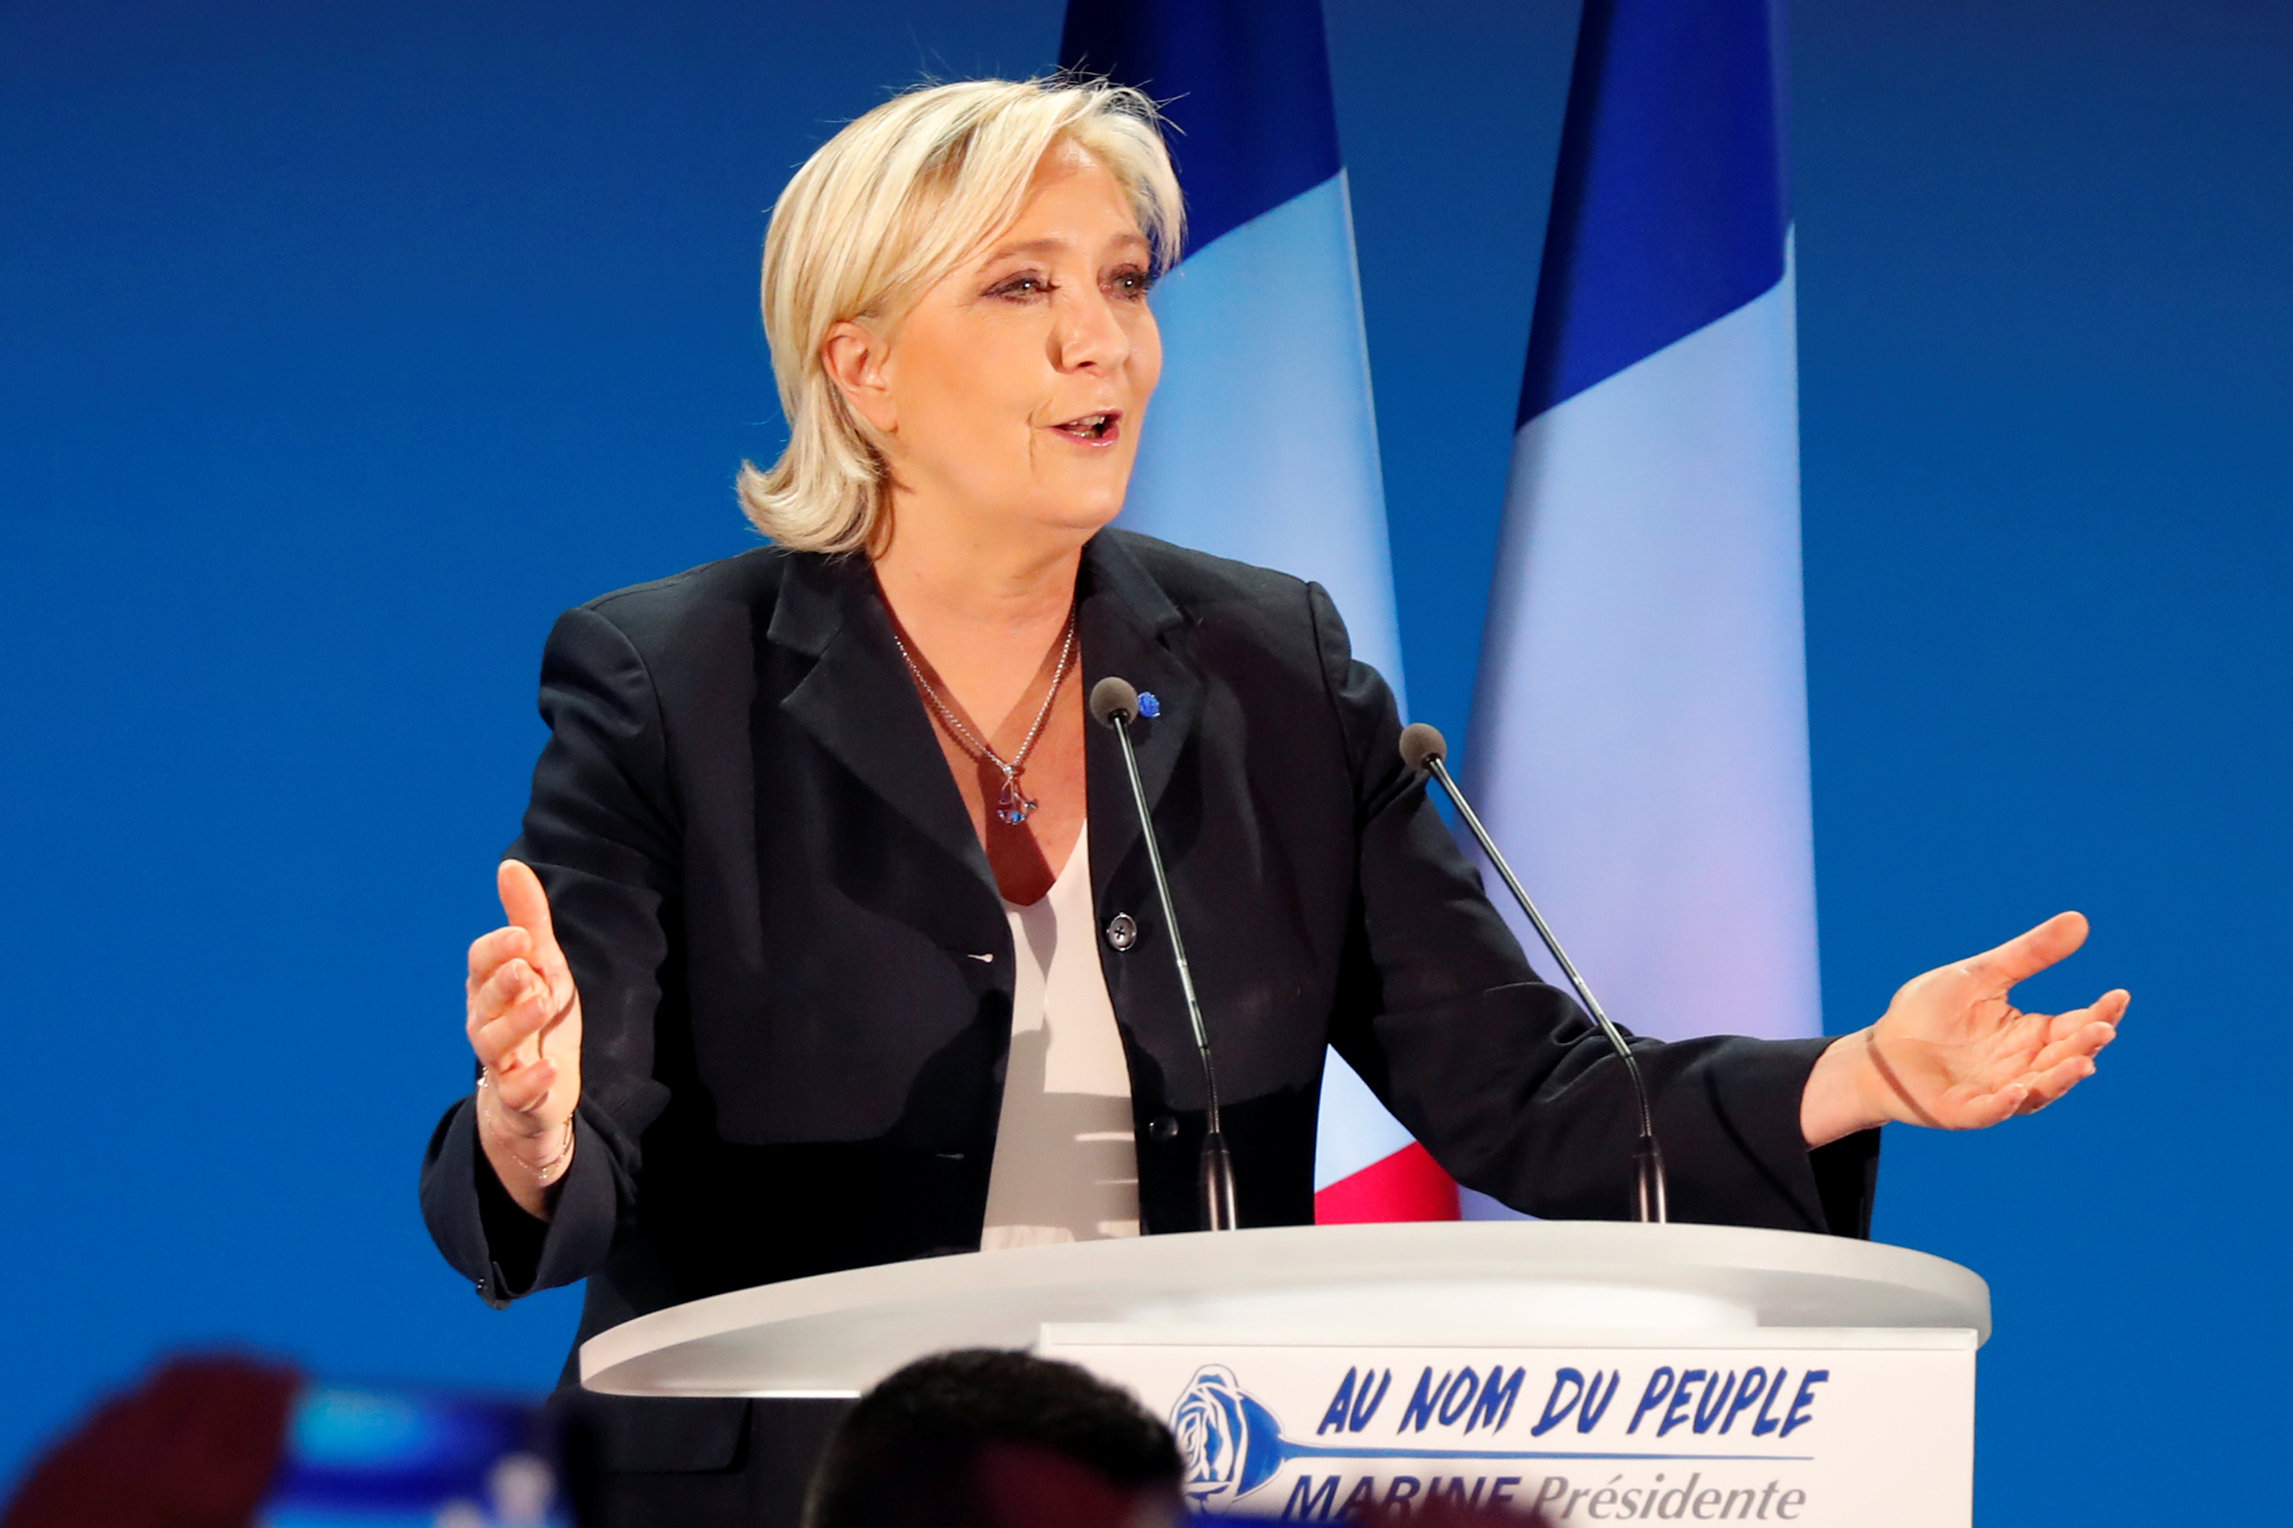 French election: Le Pen's camp turns fire on Macron